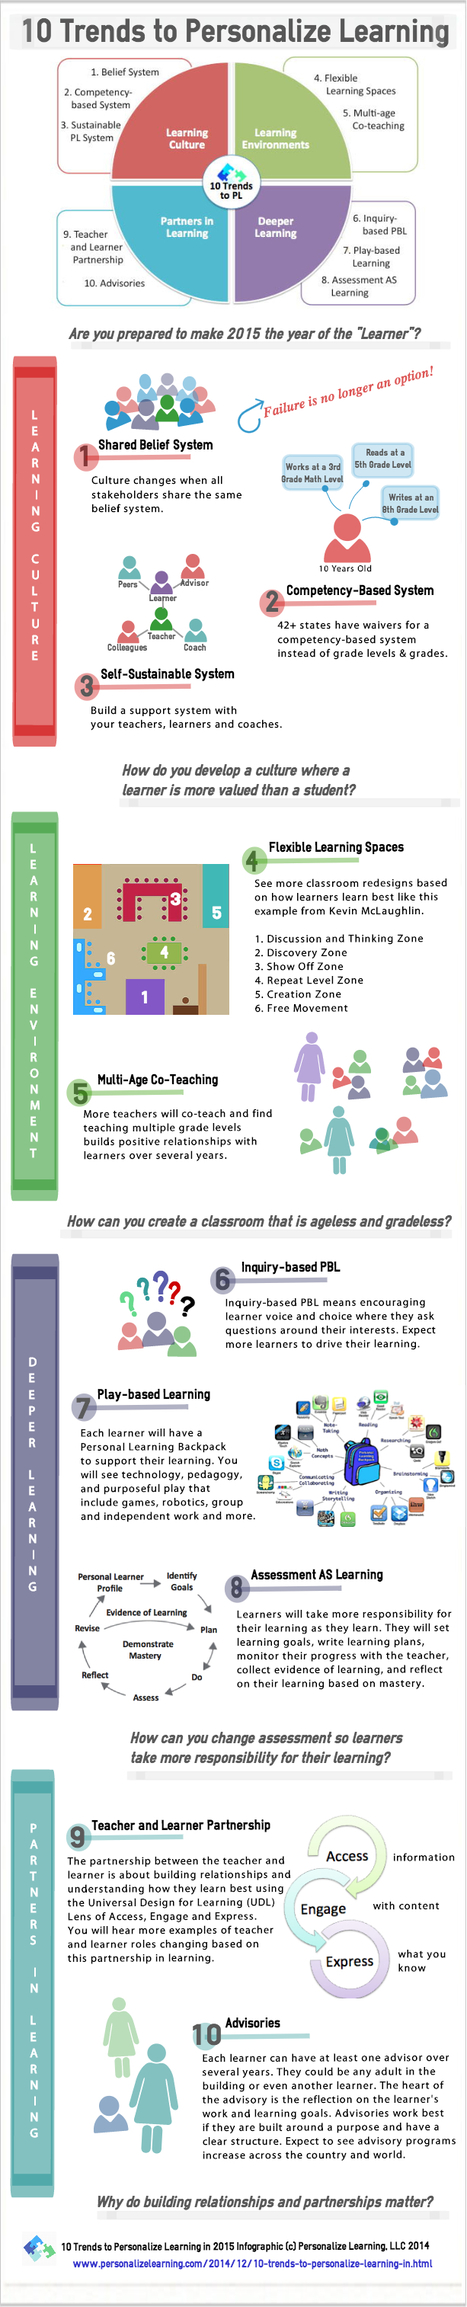 Infographic: 10 Trends to Personalize Learning in 2015 | Creating Personalized Learning Environments | Scoop.it